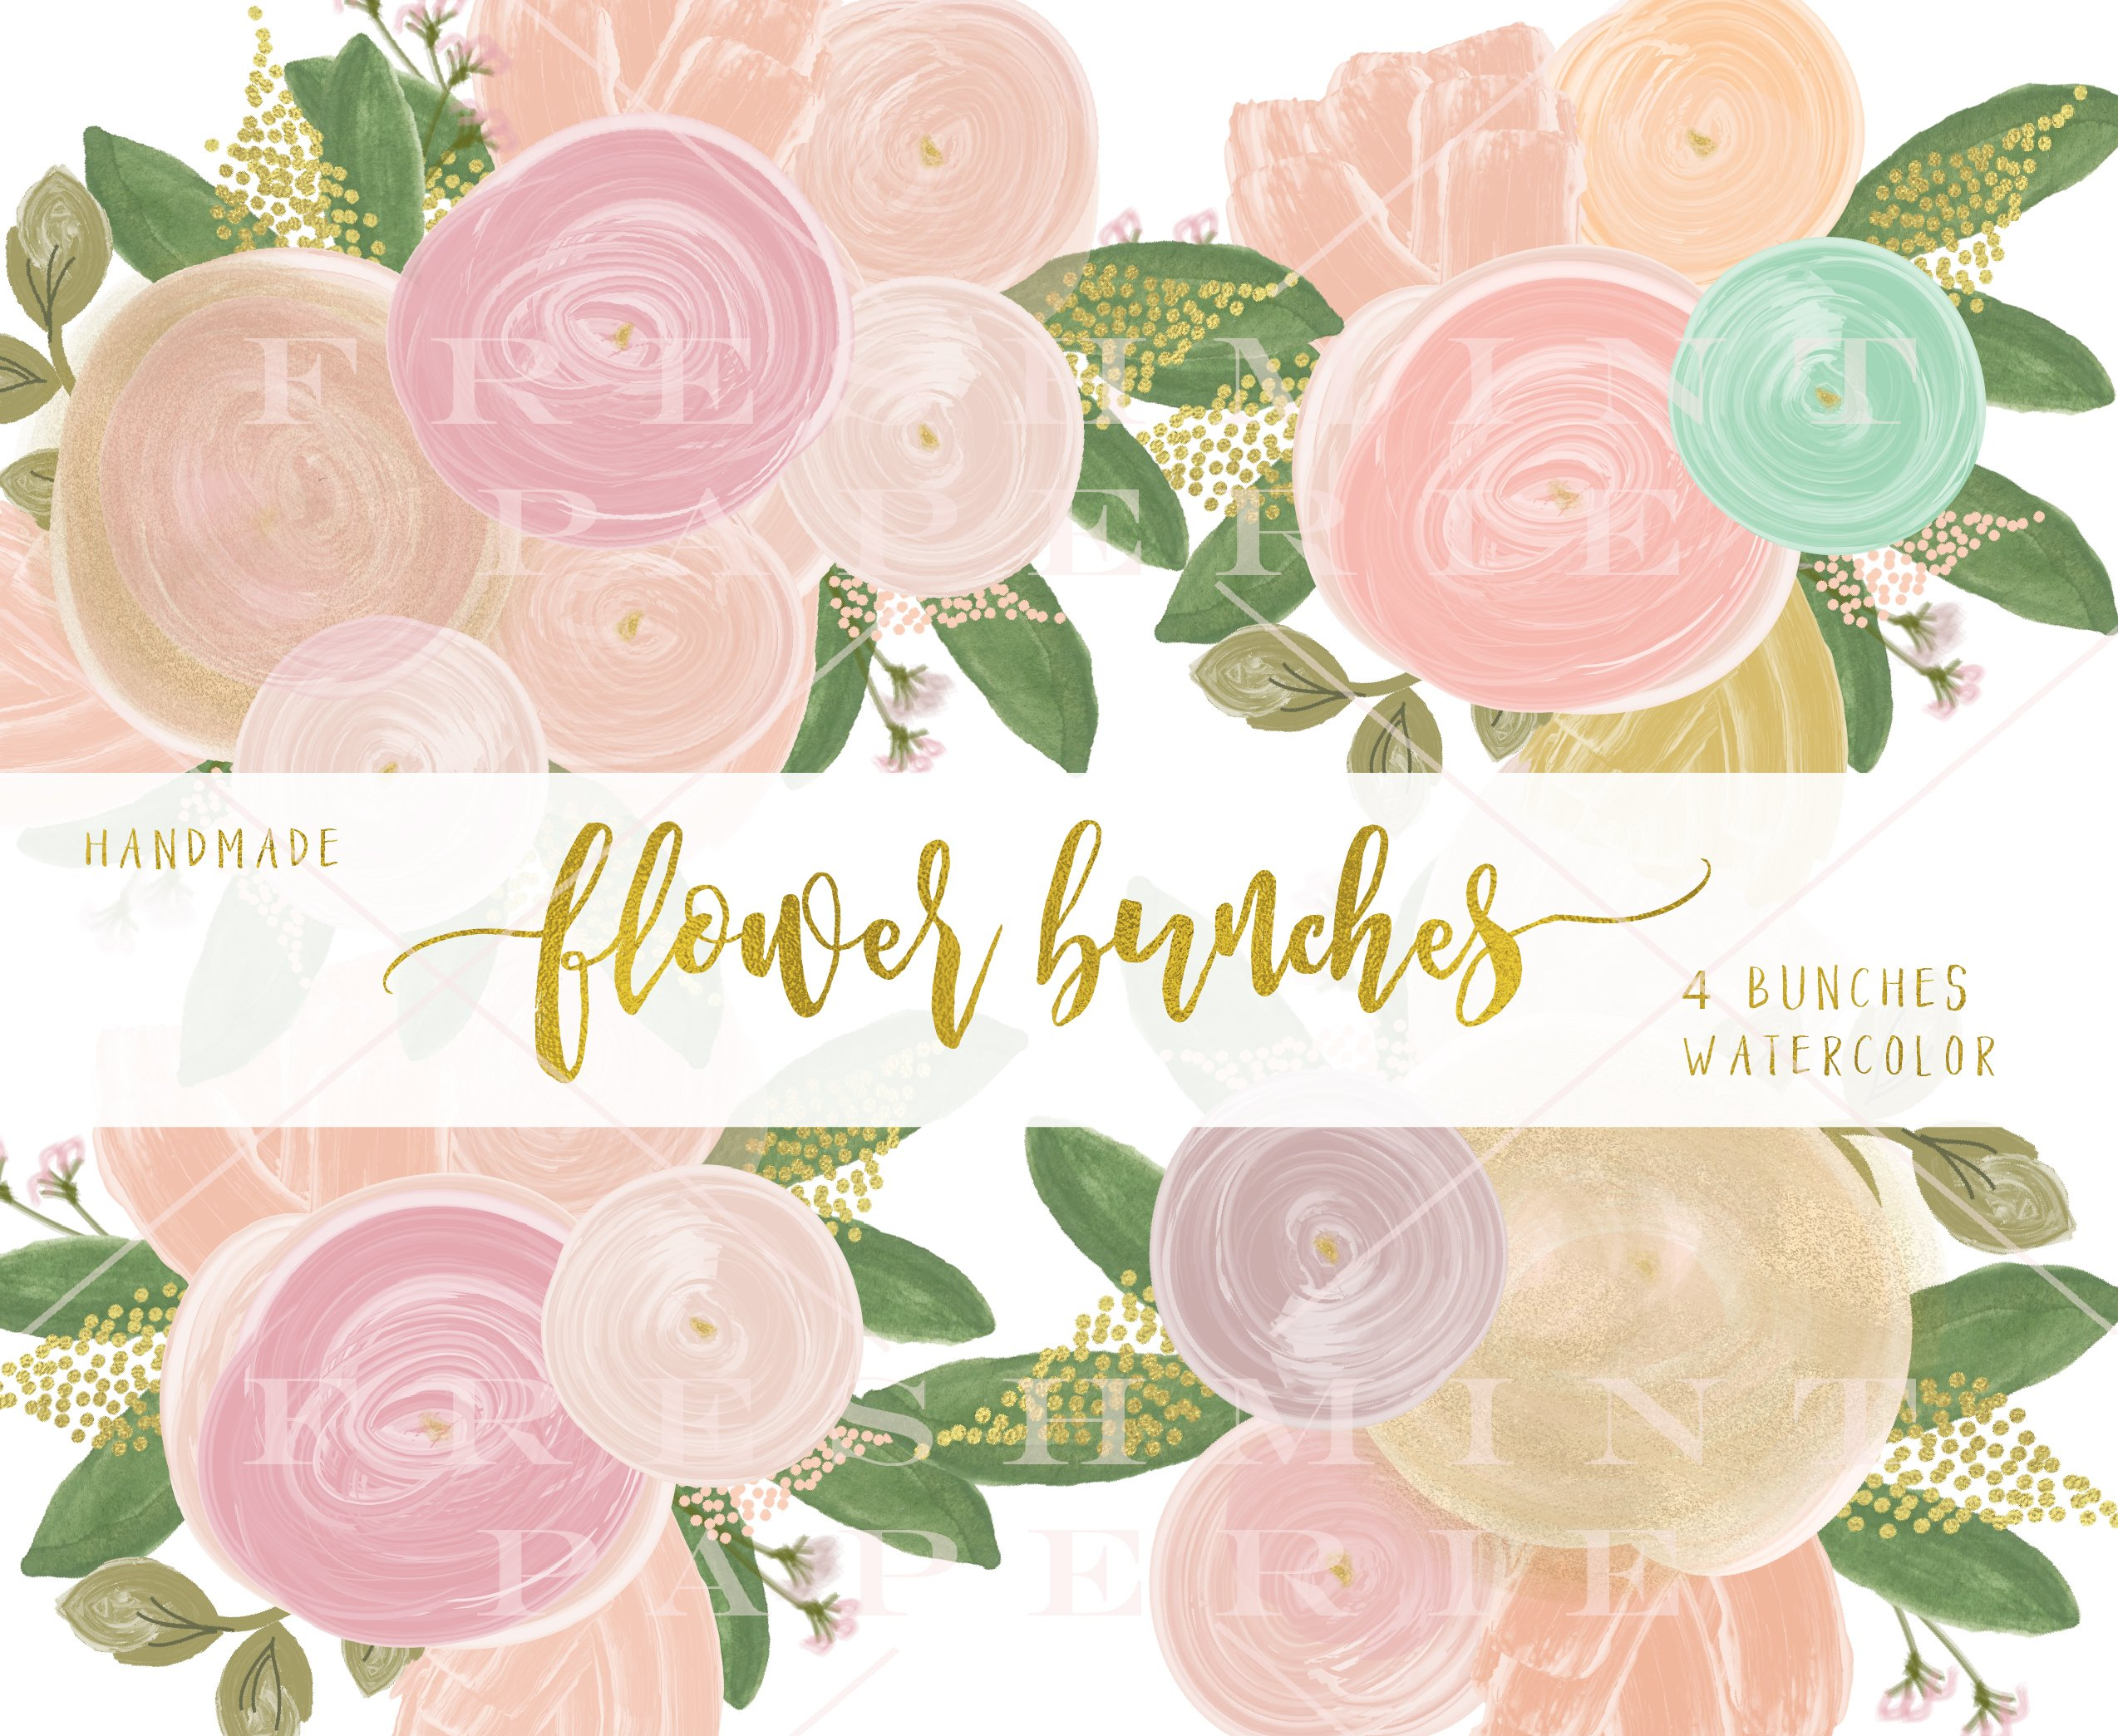 Watercolor flowers png clipart illustrations on creative market - Watercolor Flowers Png Clipart Illustrations On Creative Market 9